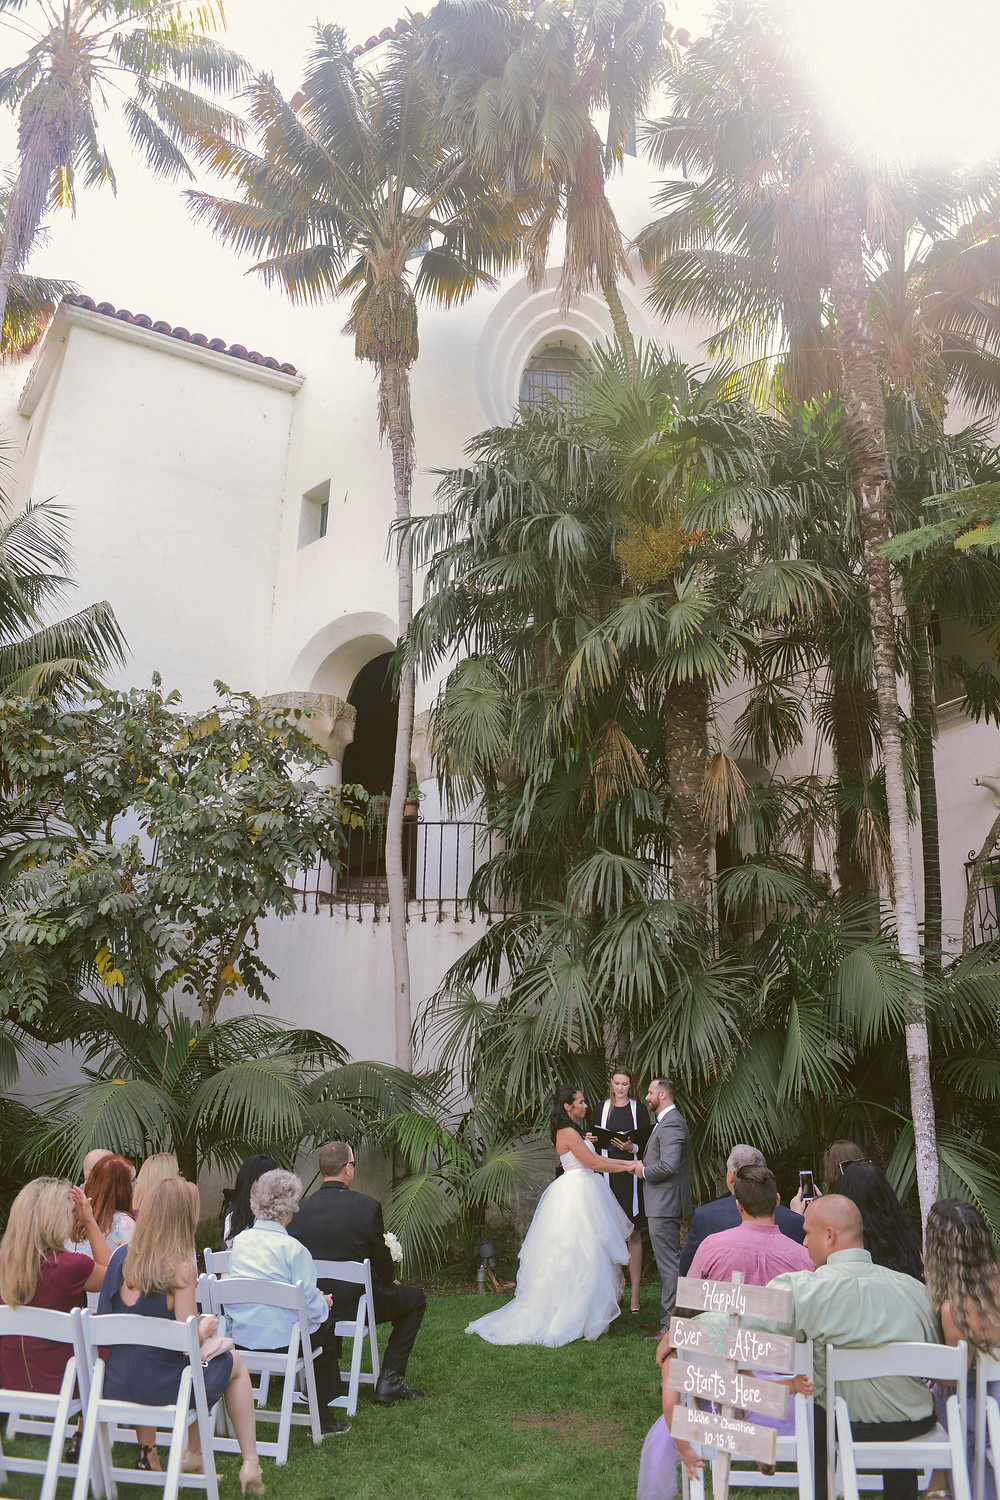 Chaustine and Blake Wedding at Santa Barbara County Courthouse, California. Photo By ByCherry Photography